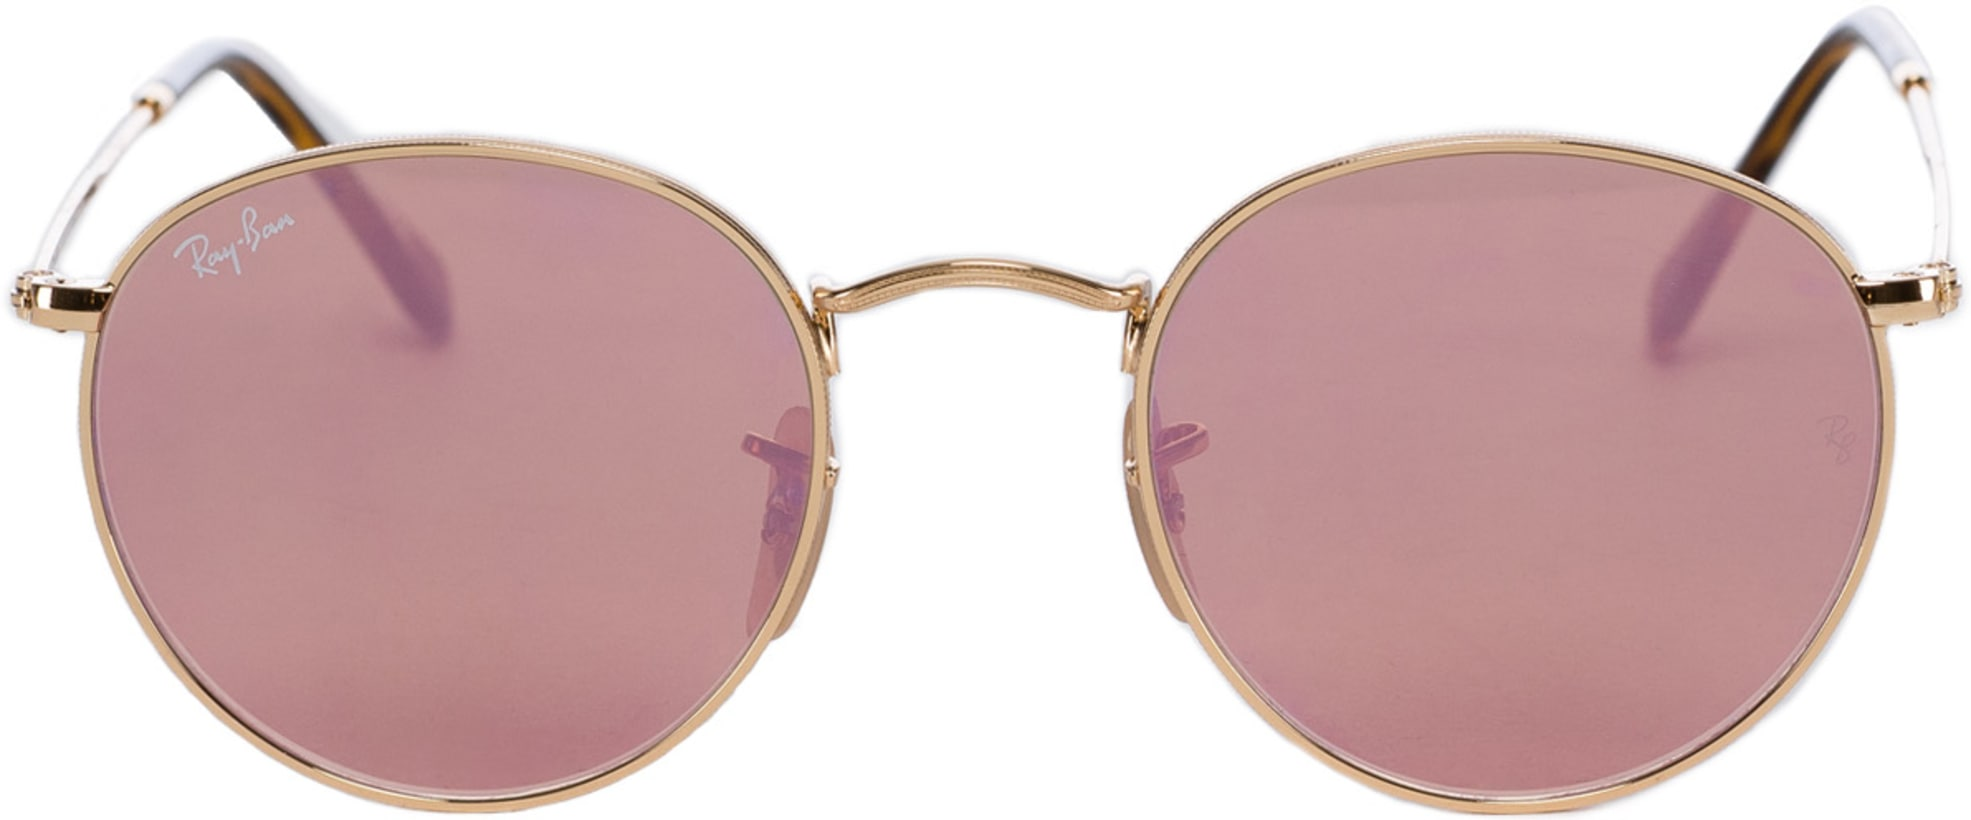 3666f459d6 Ray-Ban - Round Flat Lens Sunglasses - Gold Copper Flash